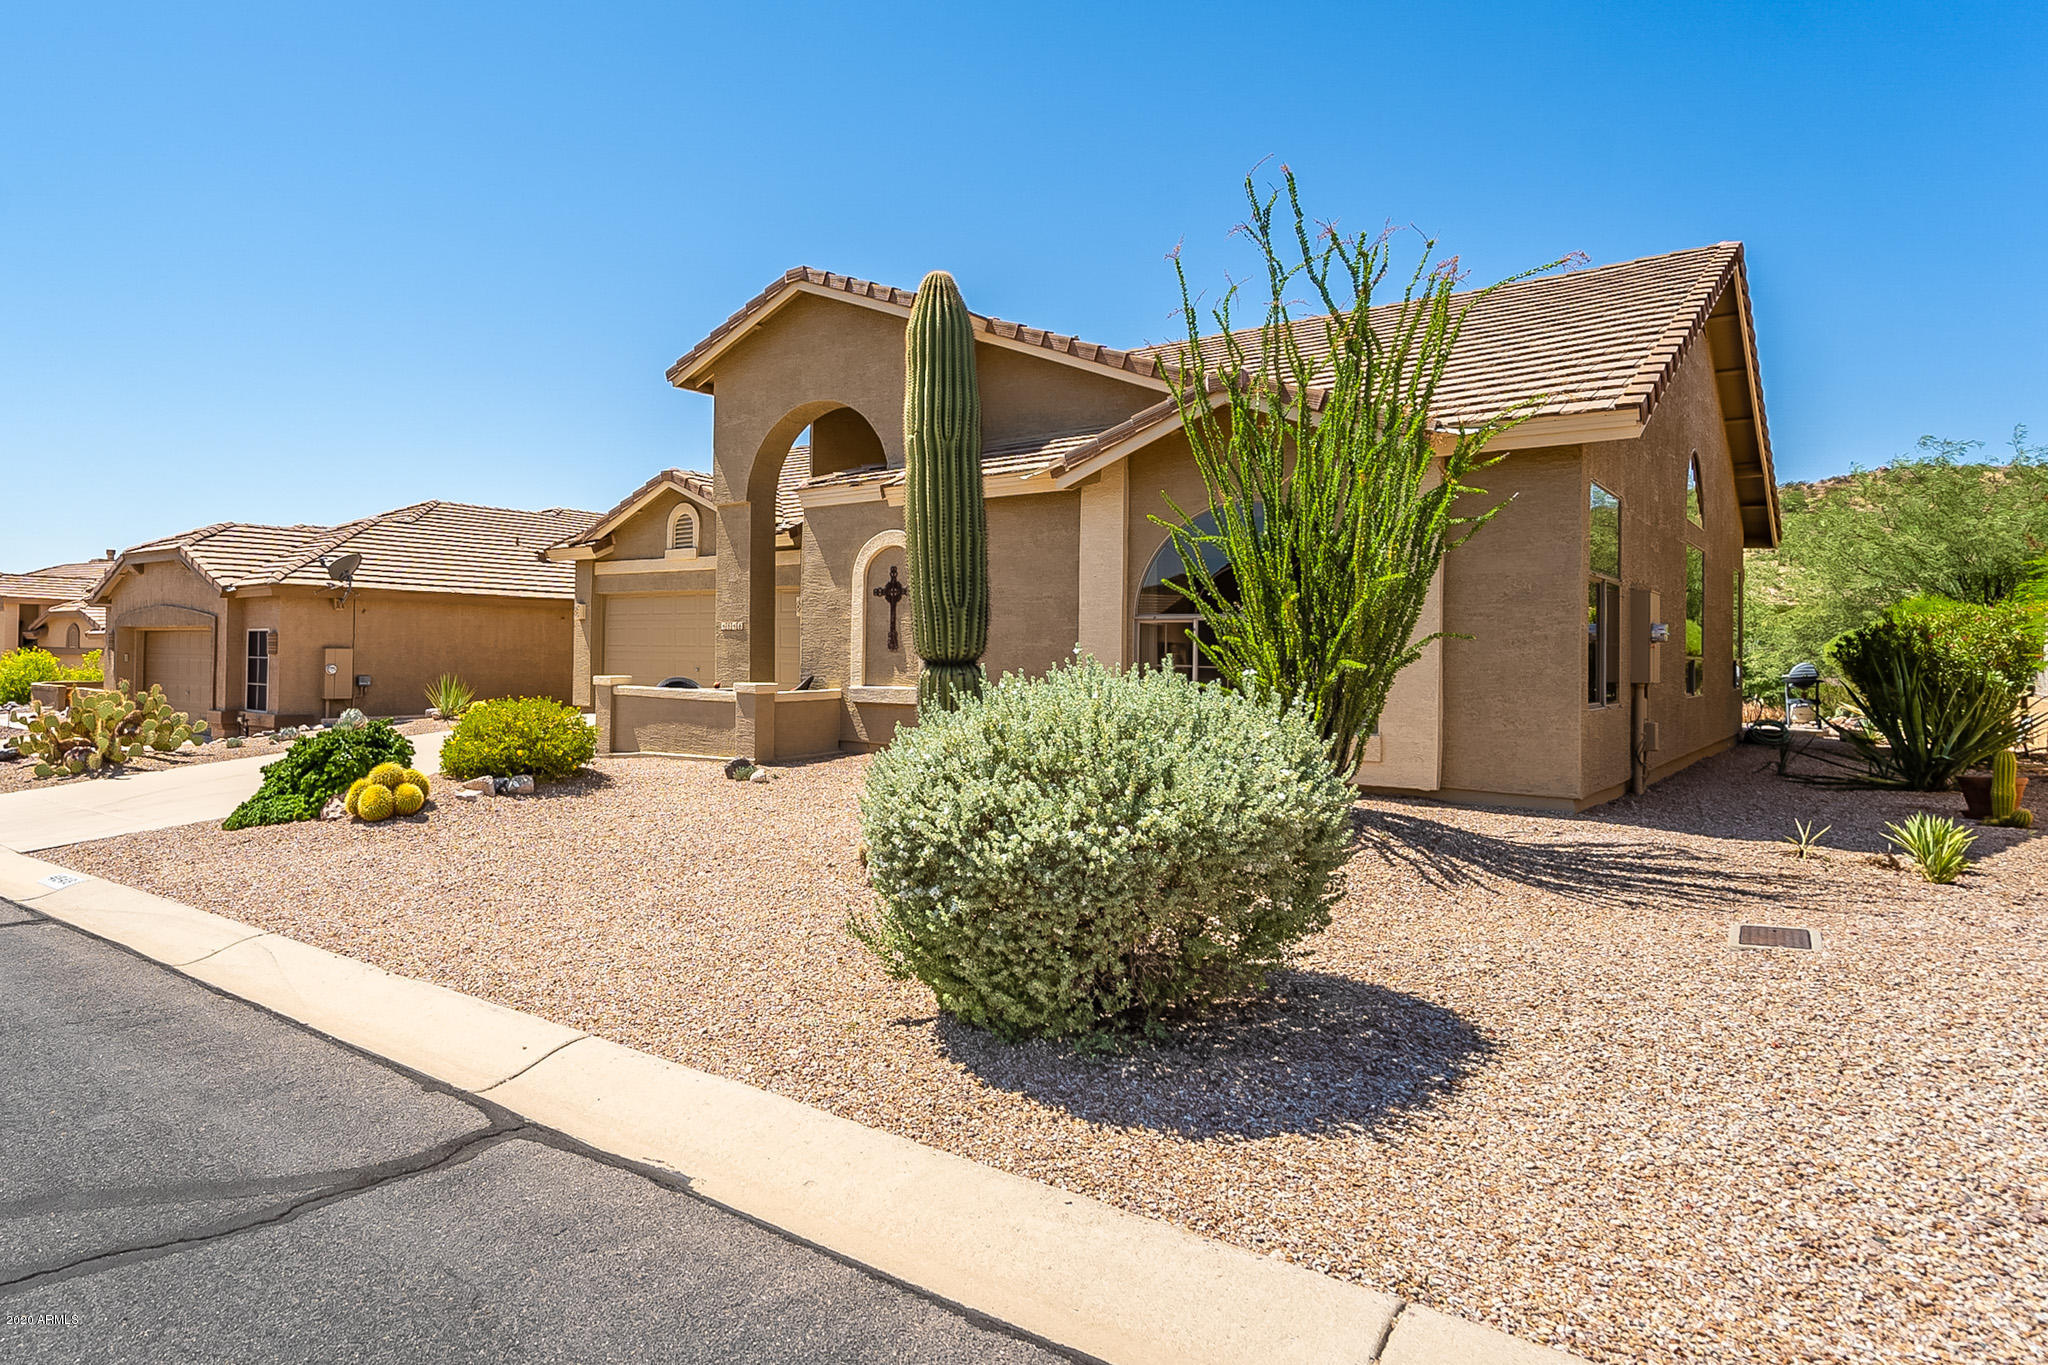 MLS 6130285 4848 S NIGHTHAWK Drive, Gold Canyon, AZ 85118 Gold Canyon AZ Mountainbrook Village